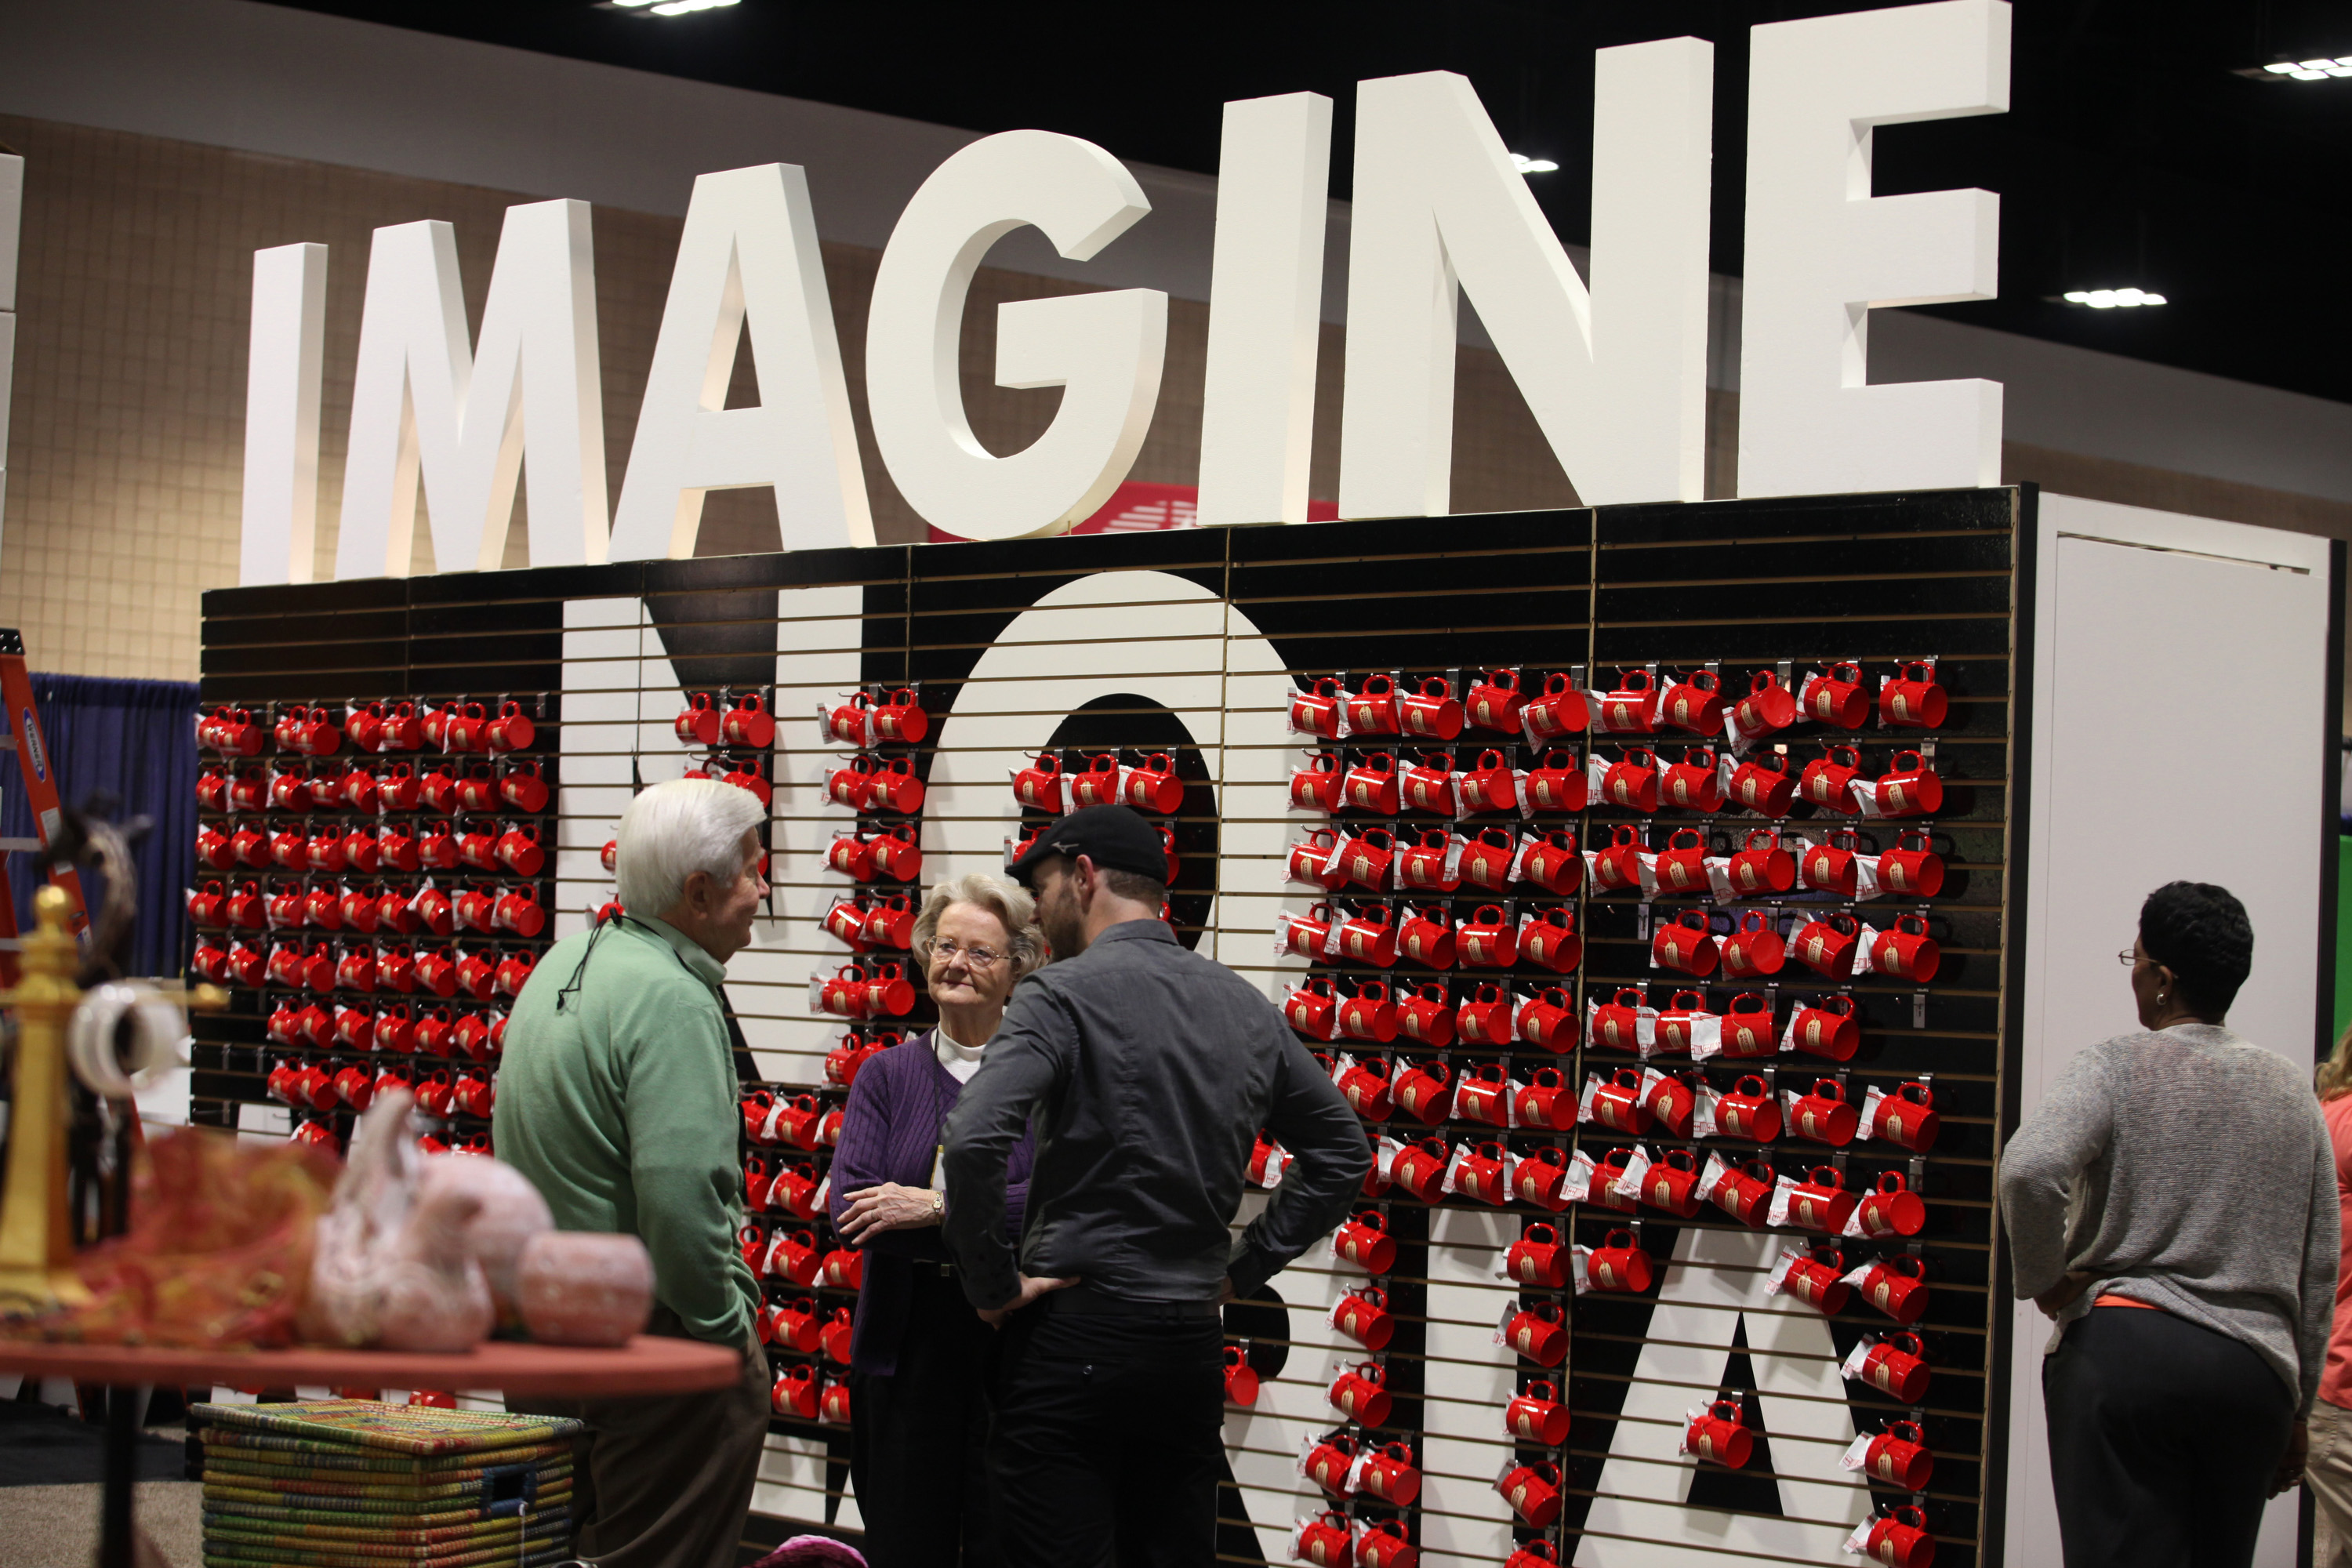 The Imagine No Malaria booth at the 2012 General Conference in Tampa, Fla., is an example of the kind of information booths that will be on display in 2016. Photo by Kathleen Barry, UMNS